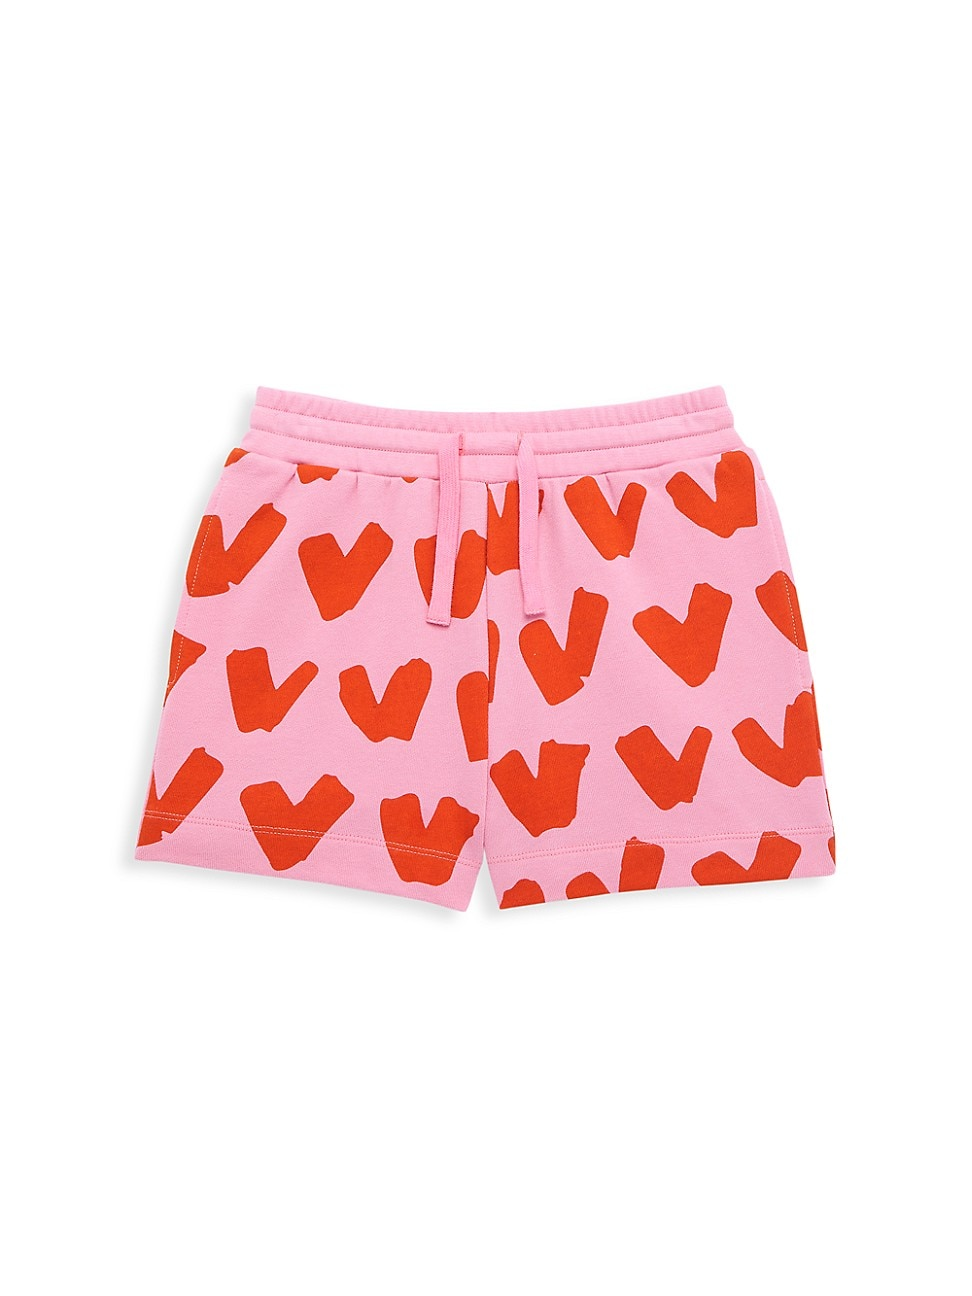 Stella Mccartney LITTLE GIRL'S & GIRL'S HEART PRINT SWEATSHORT